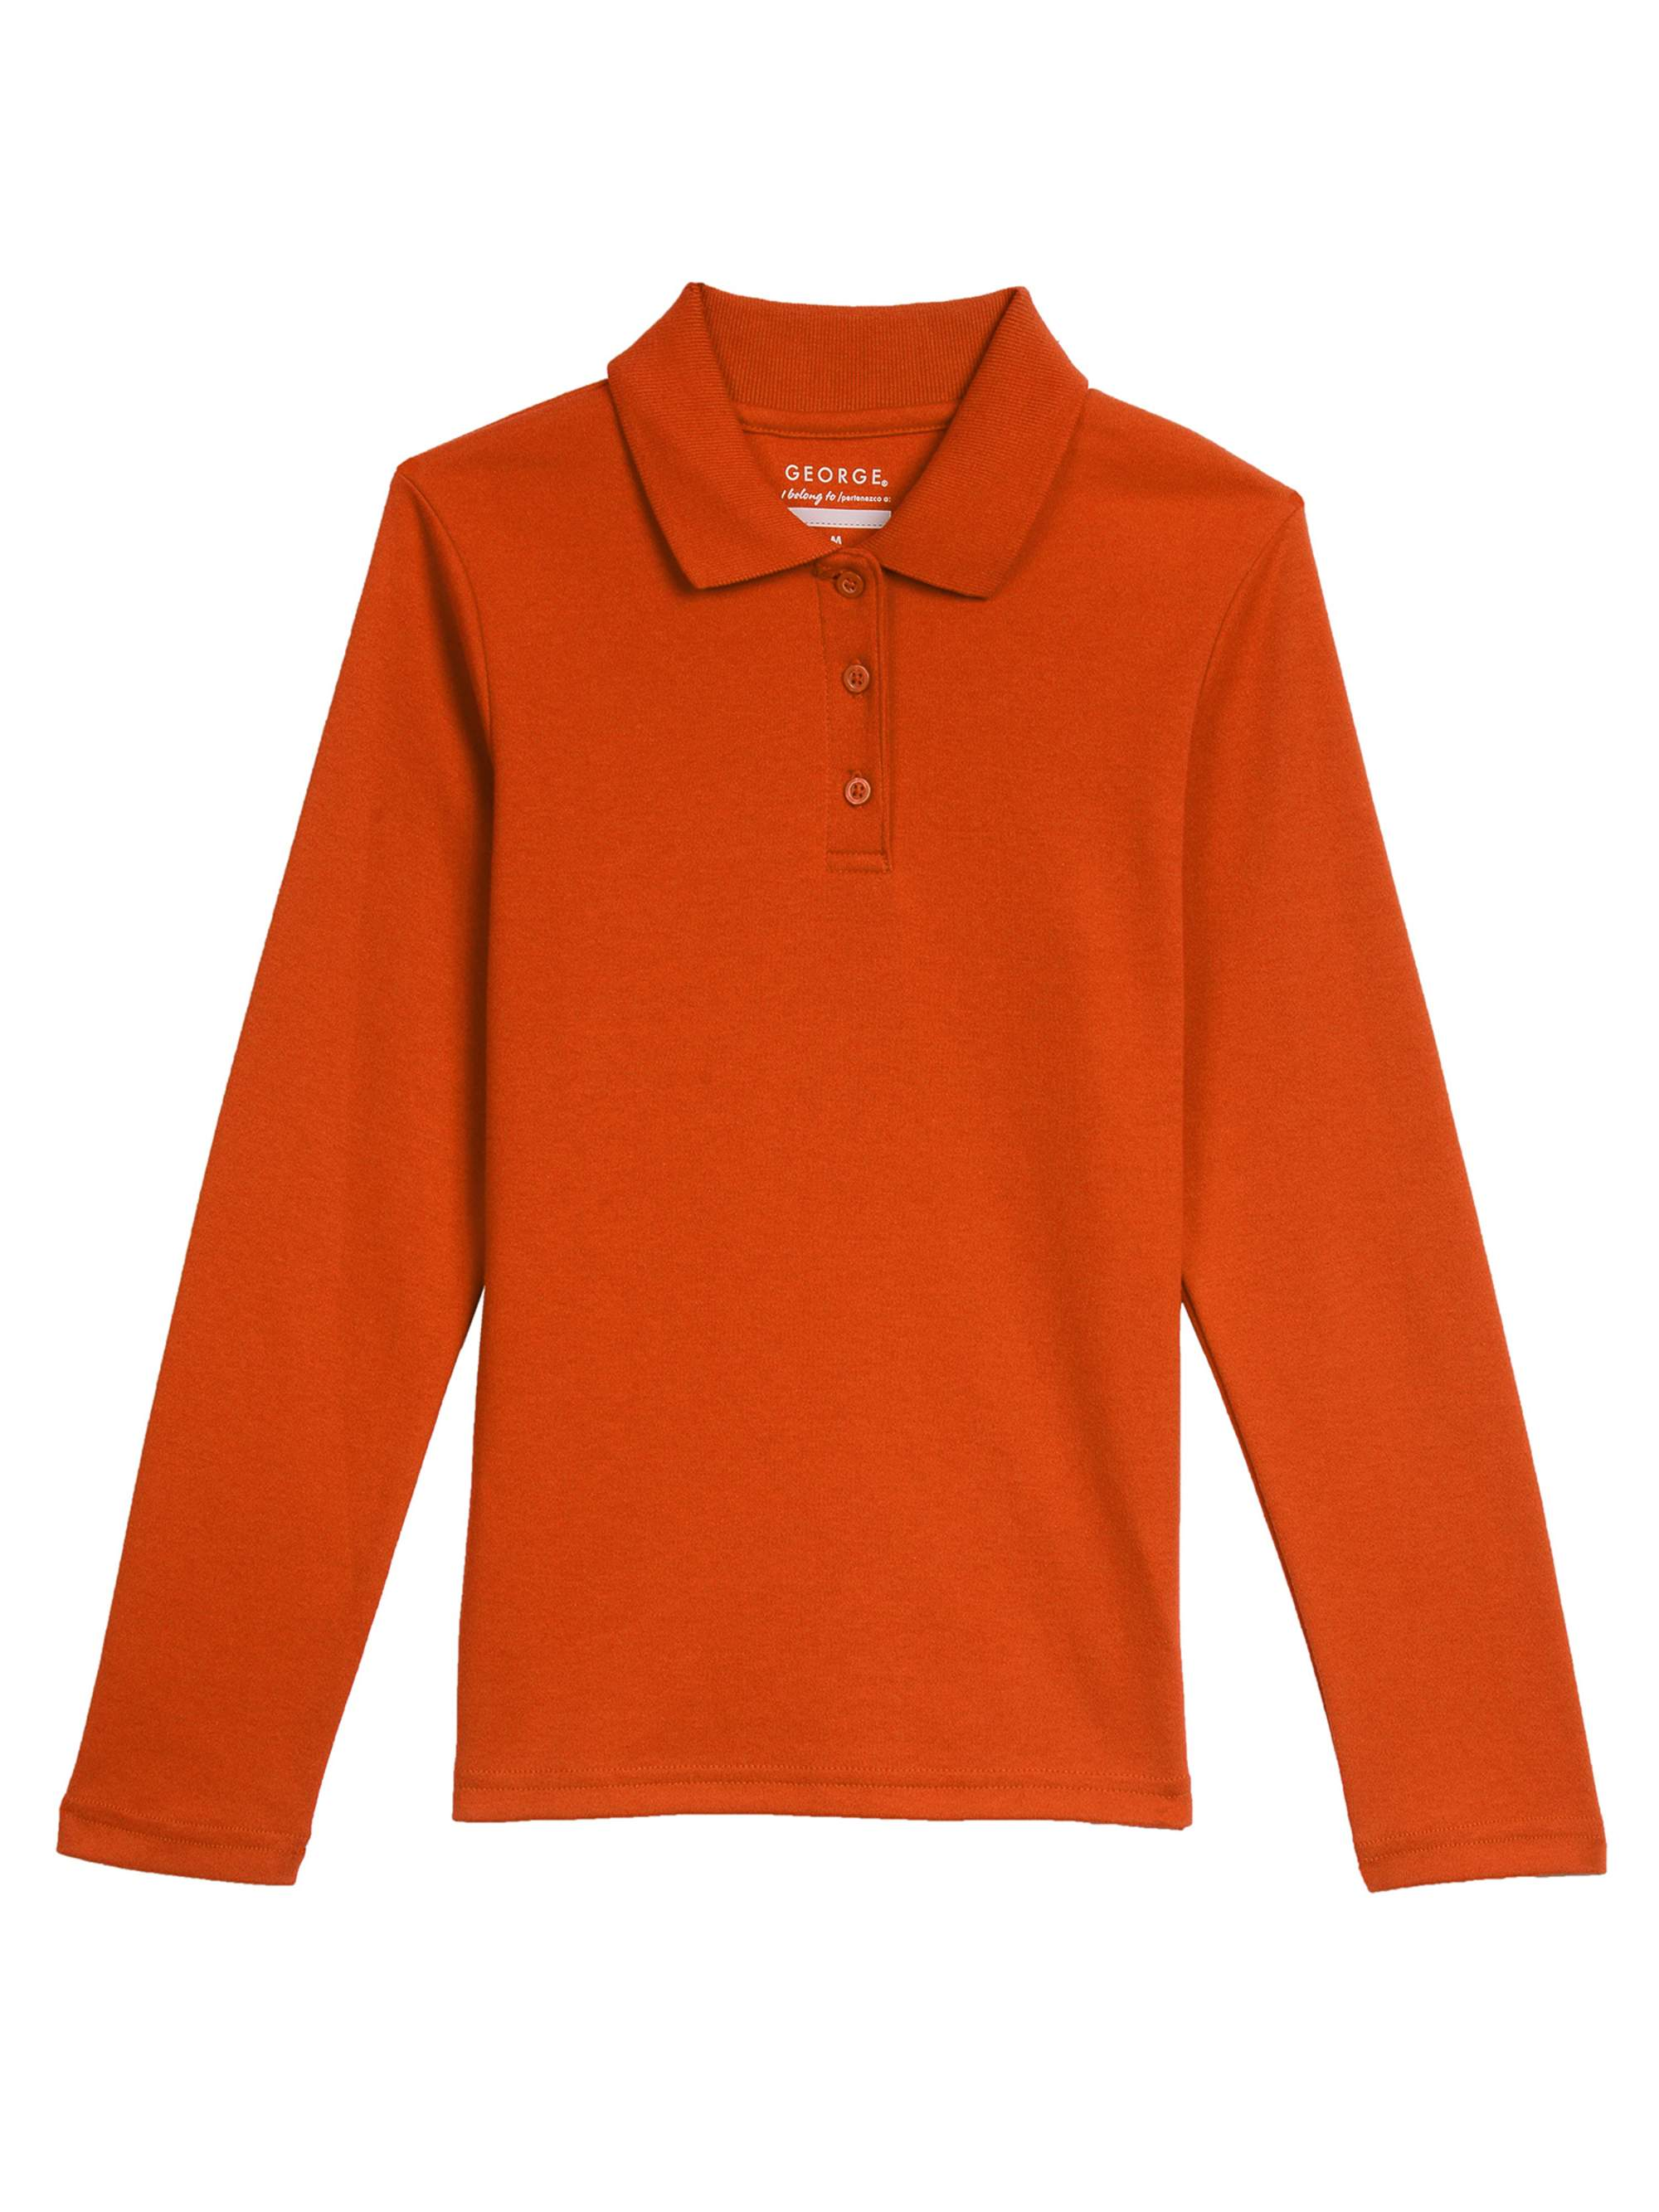 Girls' School Uniform Long Sleeve Polo Shirt